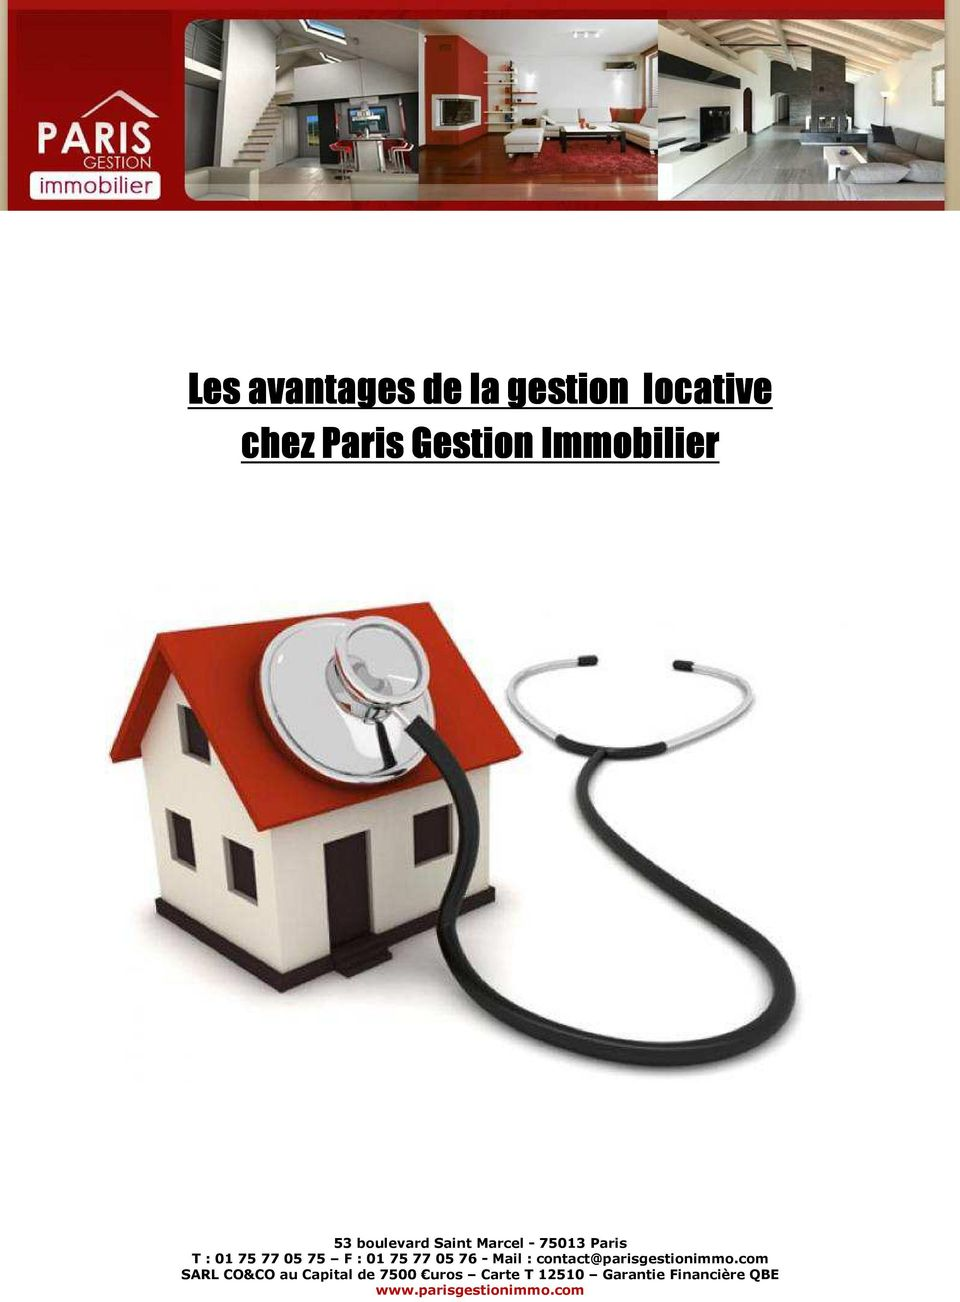 05 76 - Mail : contact@parisgestionimmo.